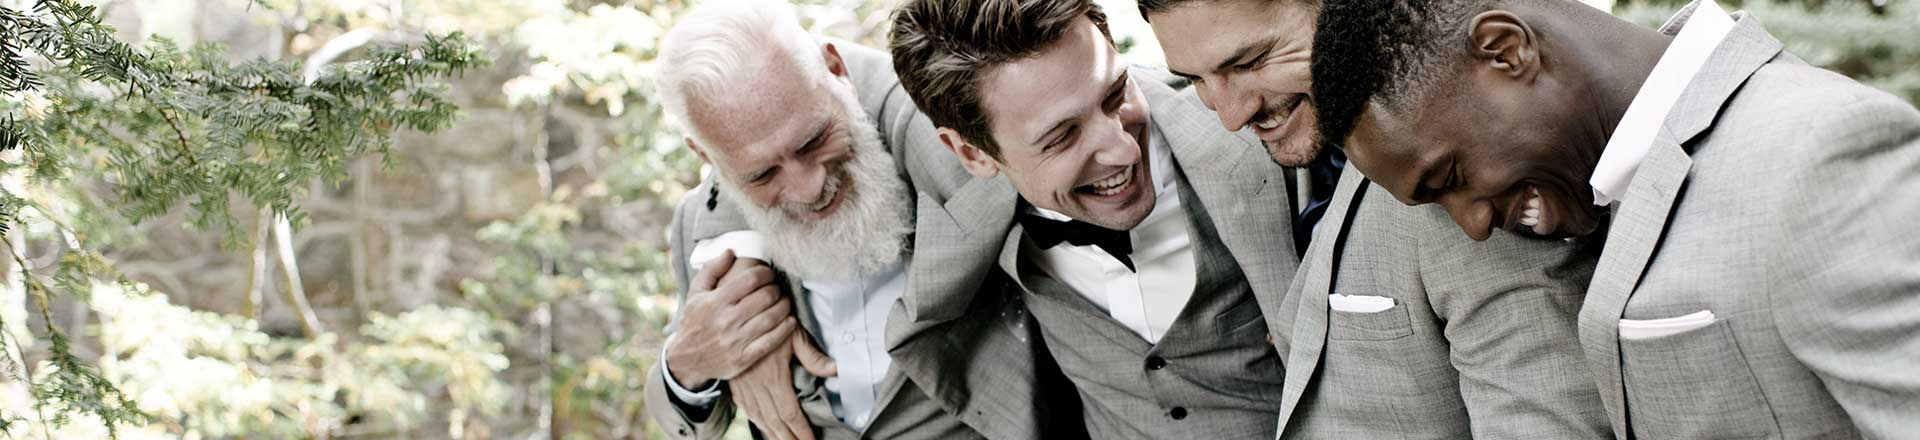 A Guide to Best Man Duties and Responsibilities (hero)